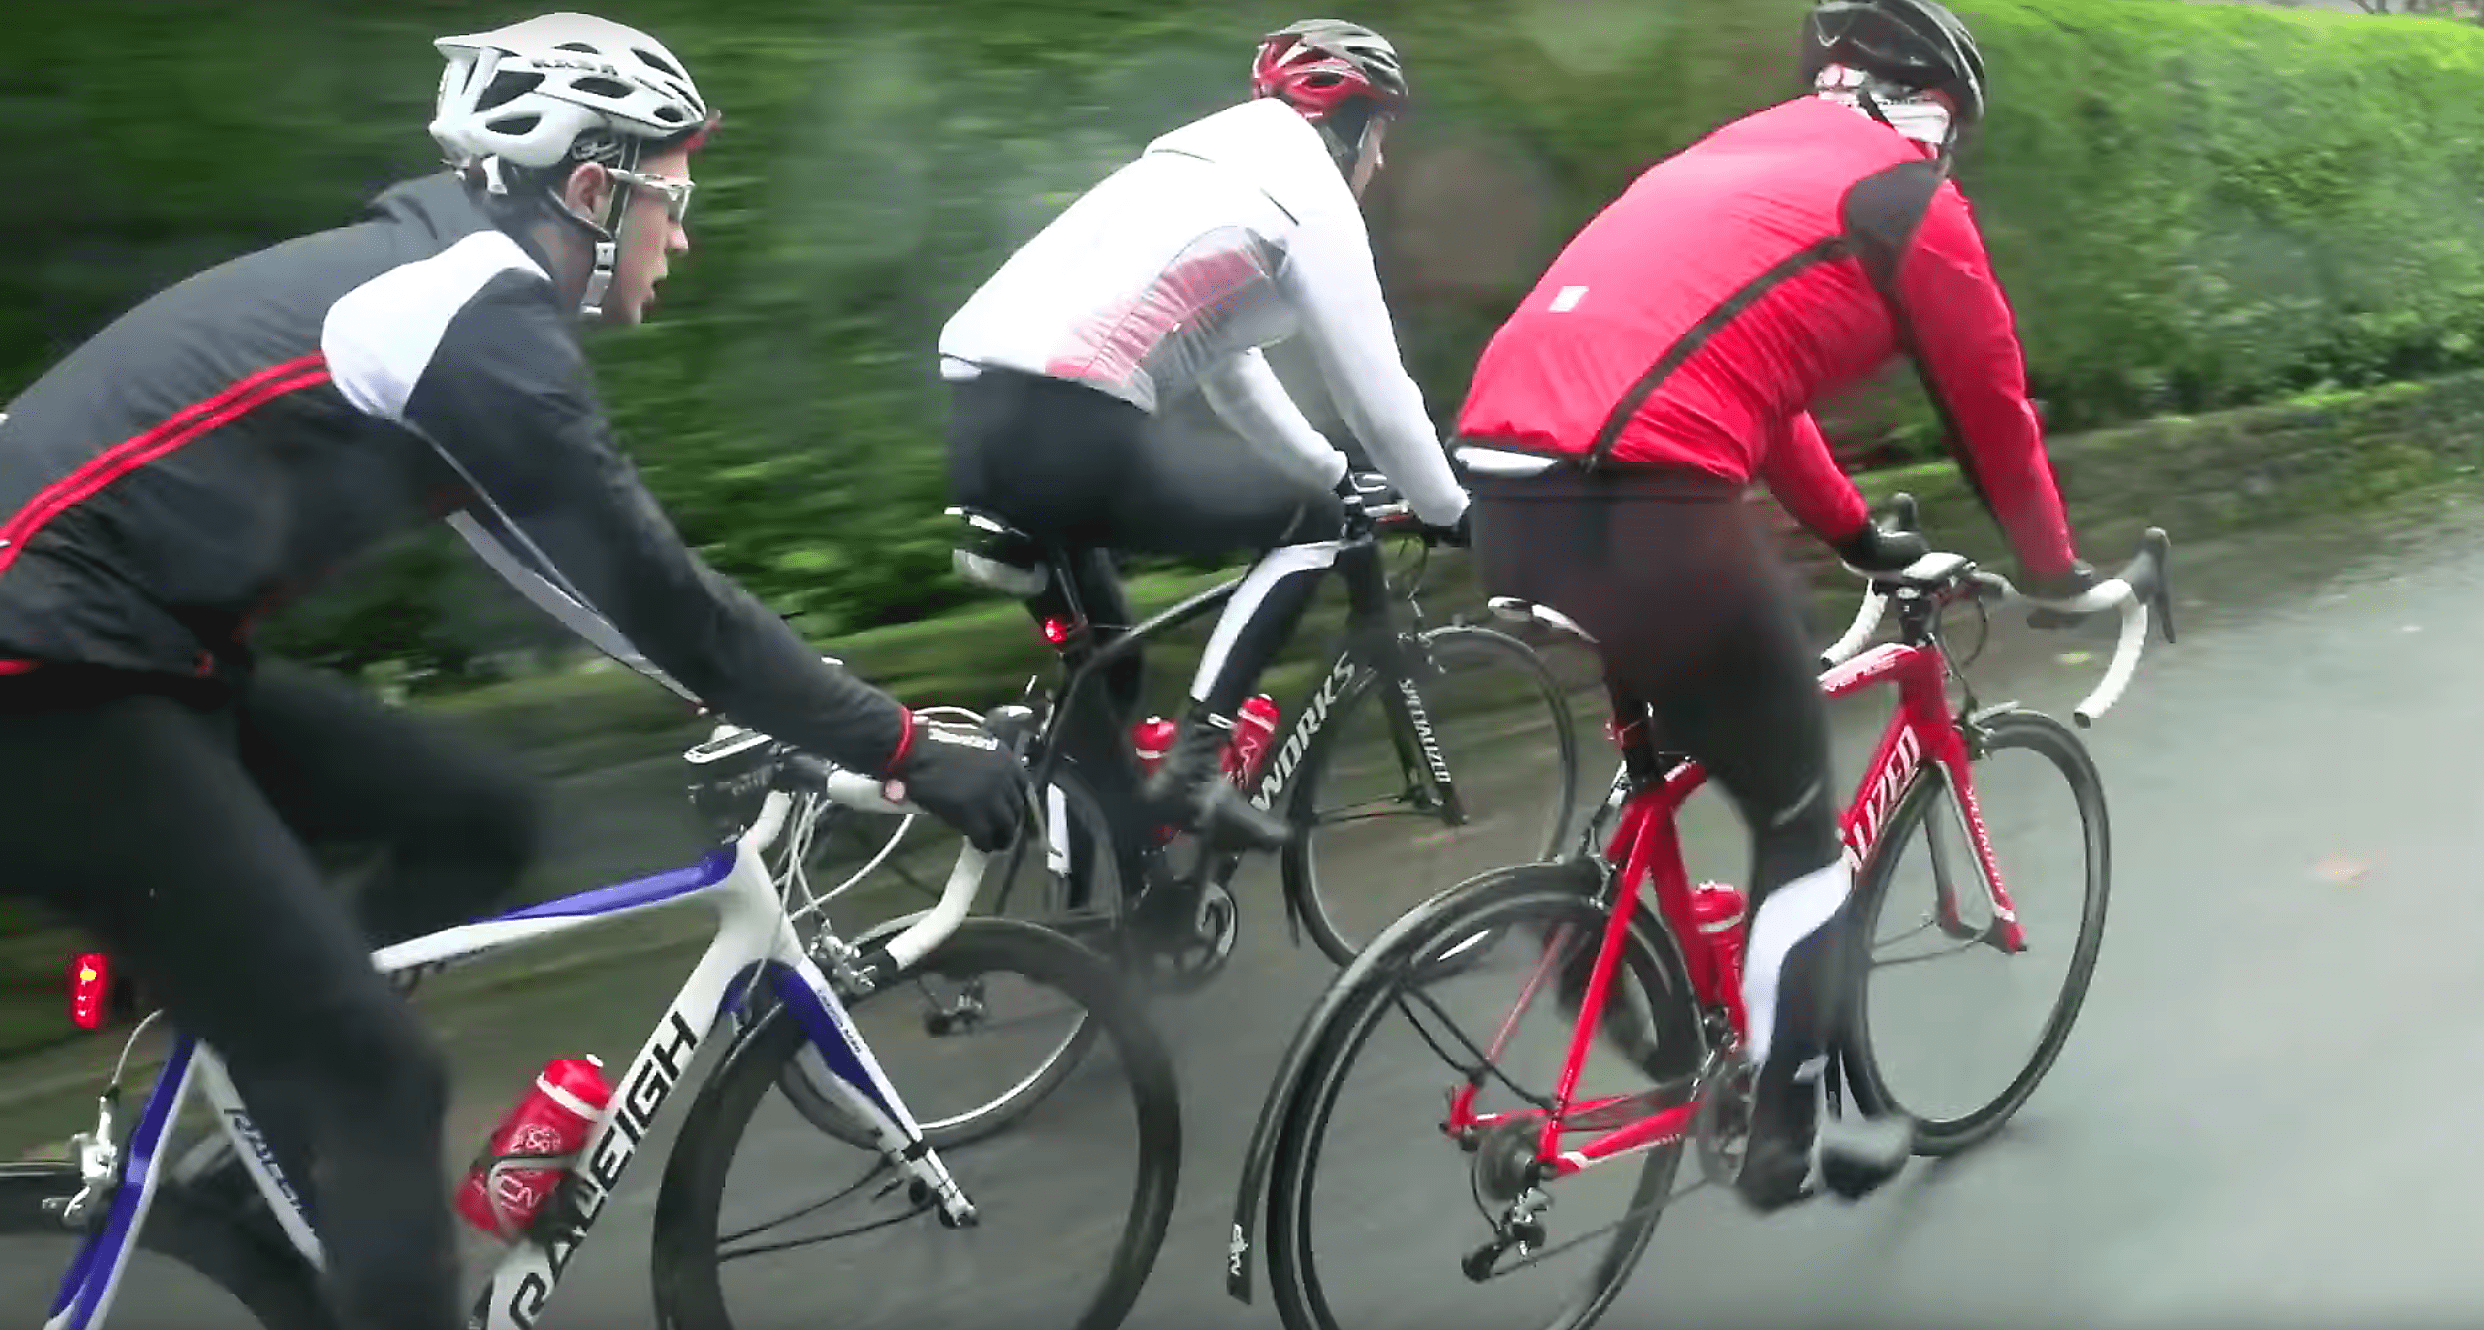 MUDGUARDS: WHY USE THEM? AND HOW TO CHOOSE THEM   Full Speed Ahead